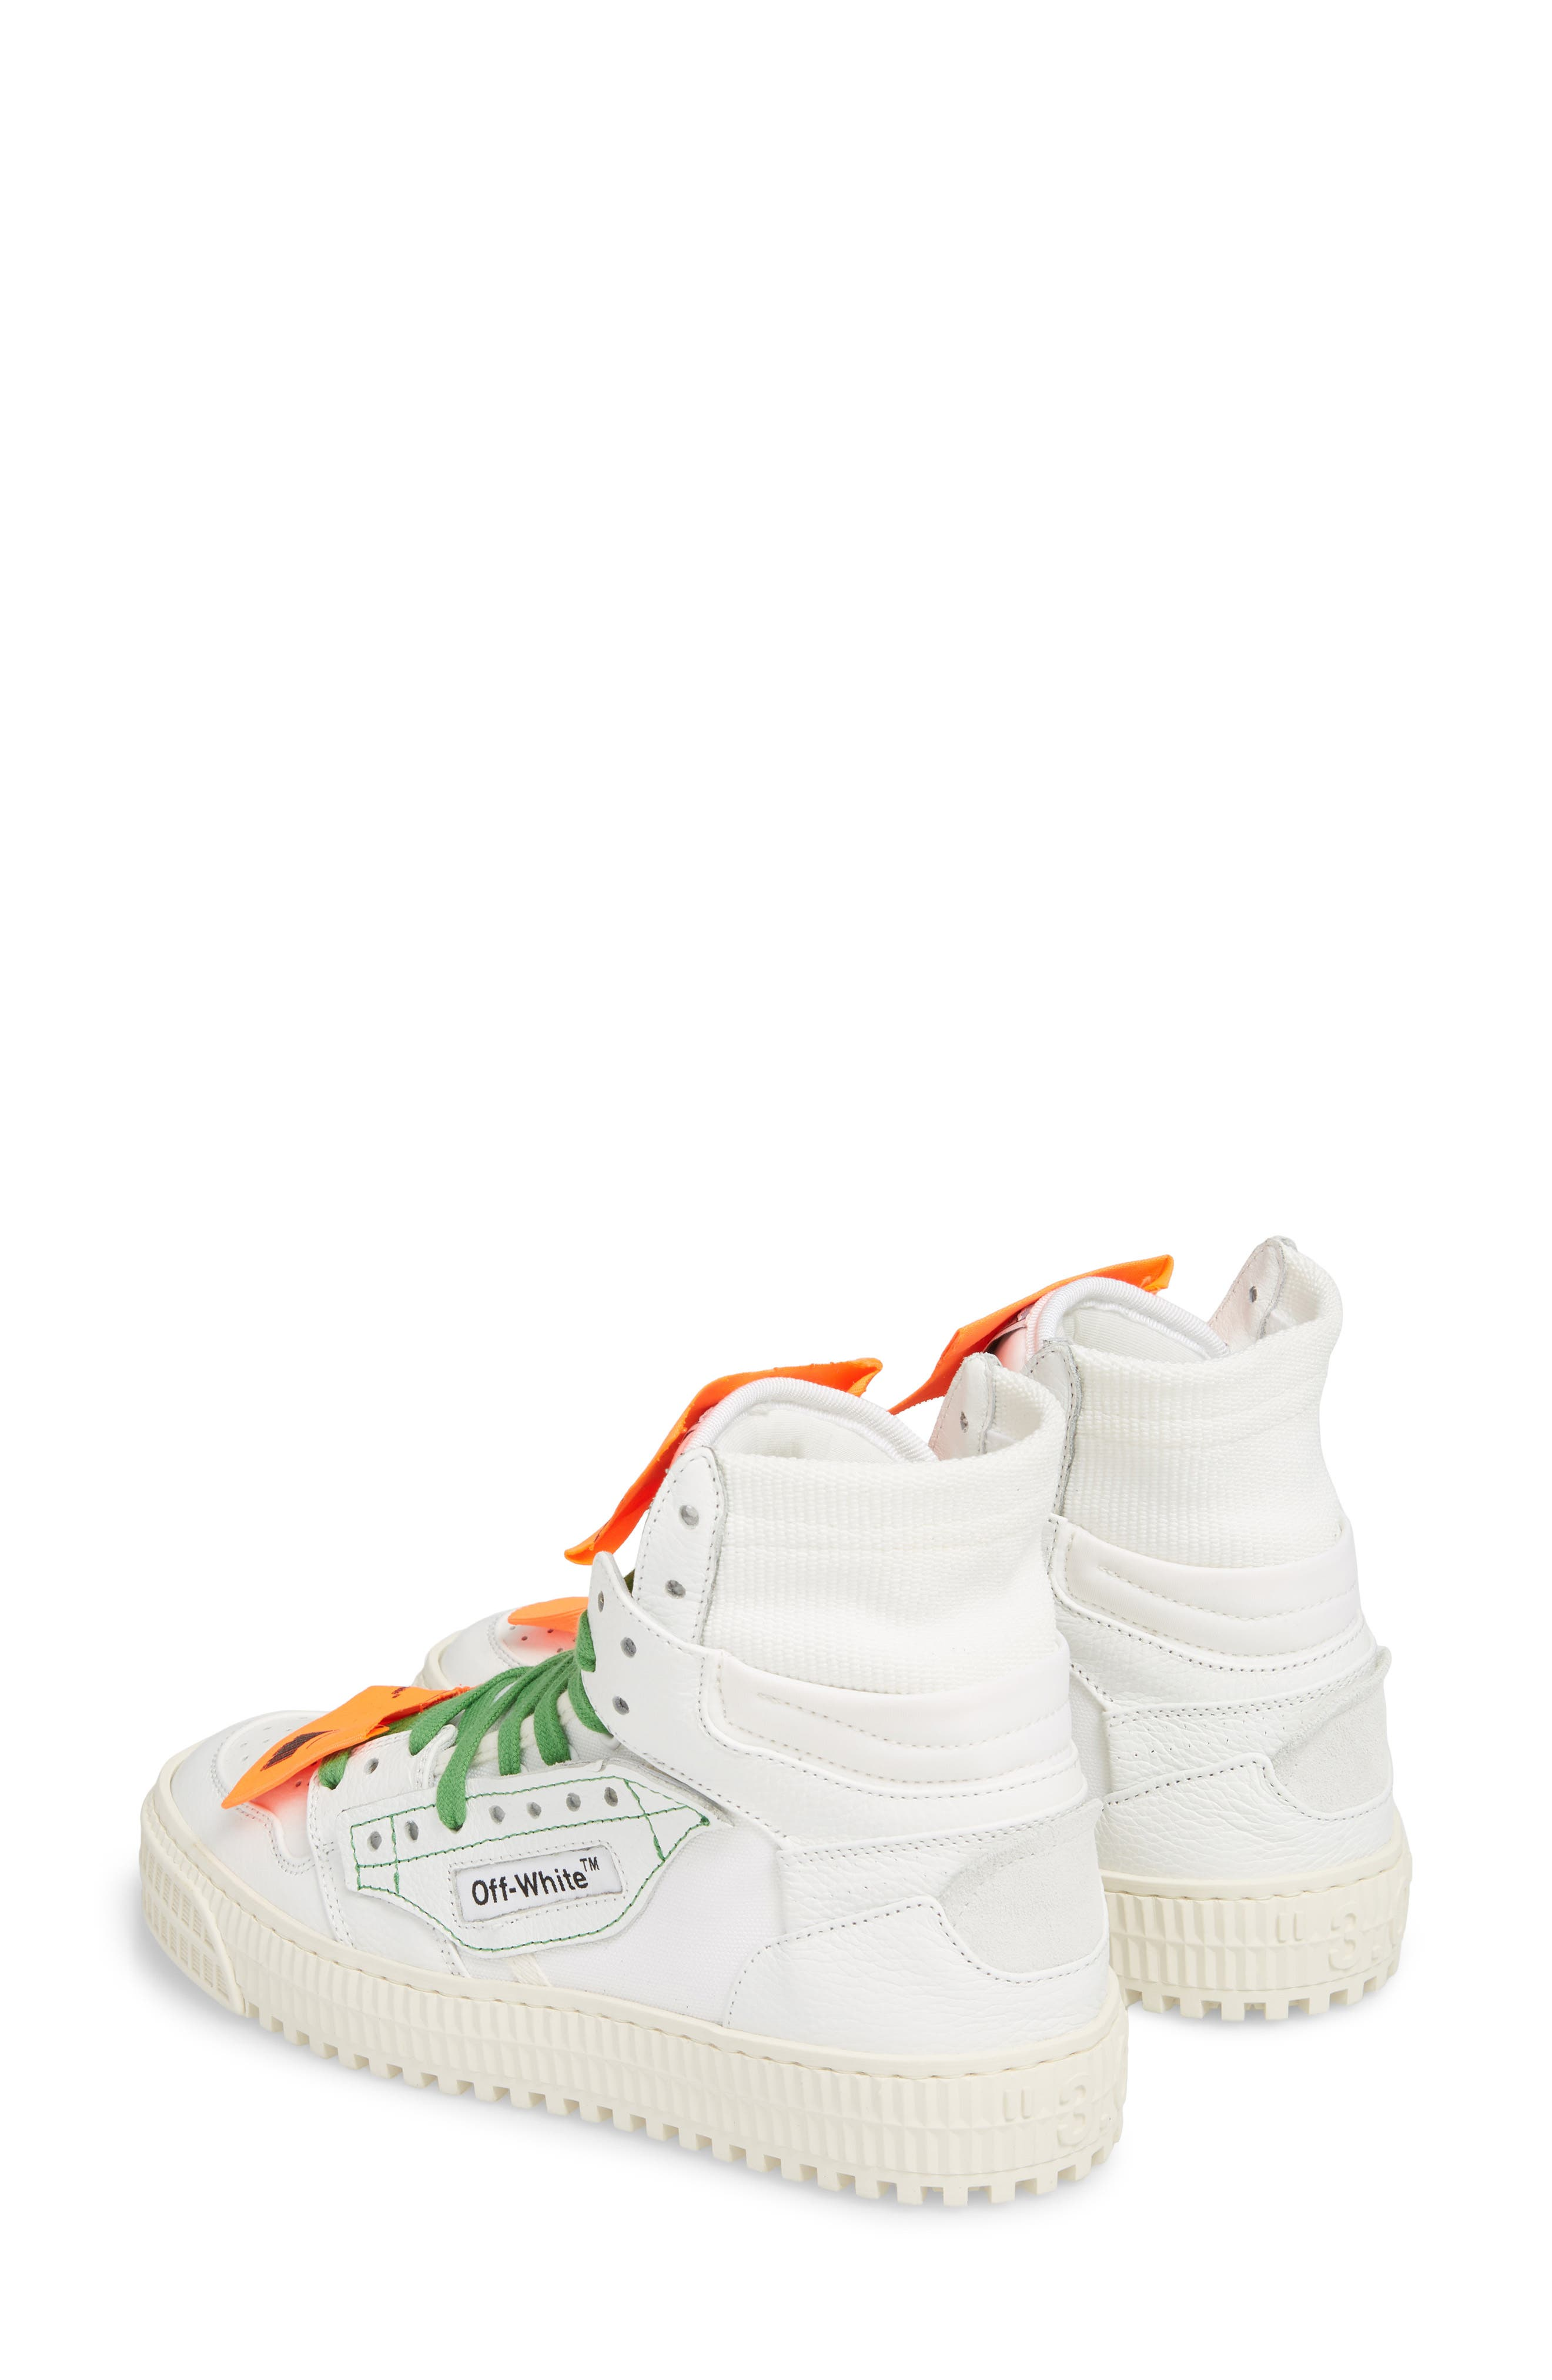 Low 3.0 Sneaker,                             Alternate thumbnail 3, color,                             WHITE NO COLOR